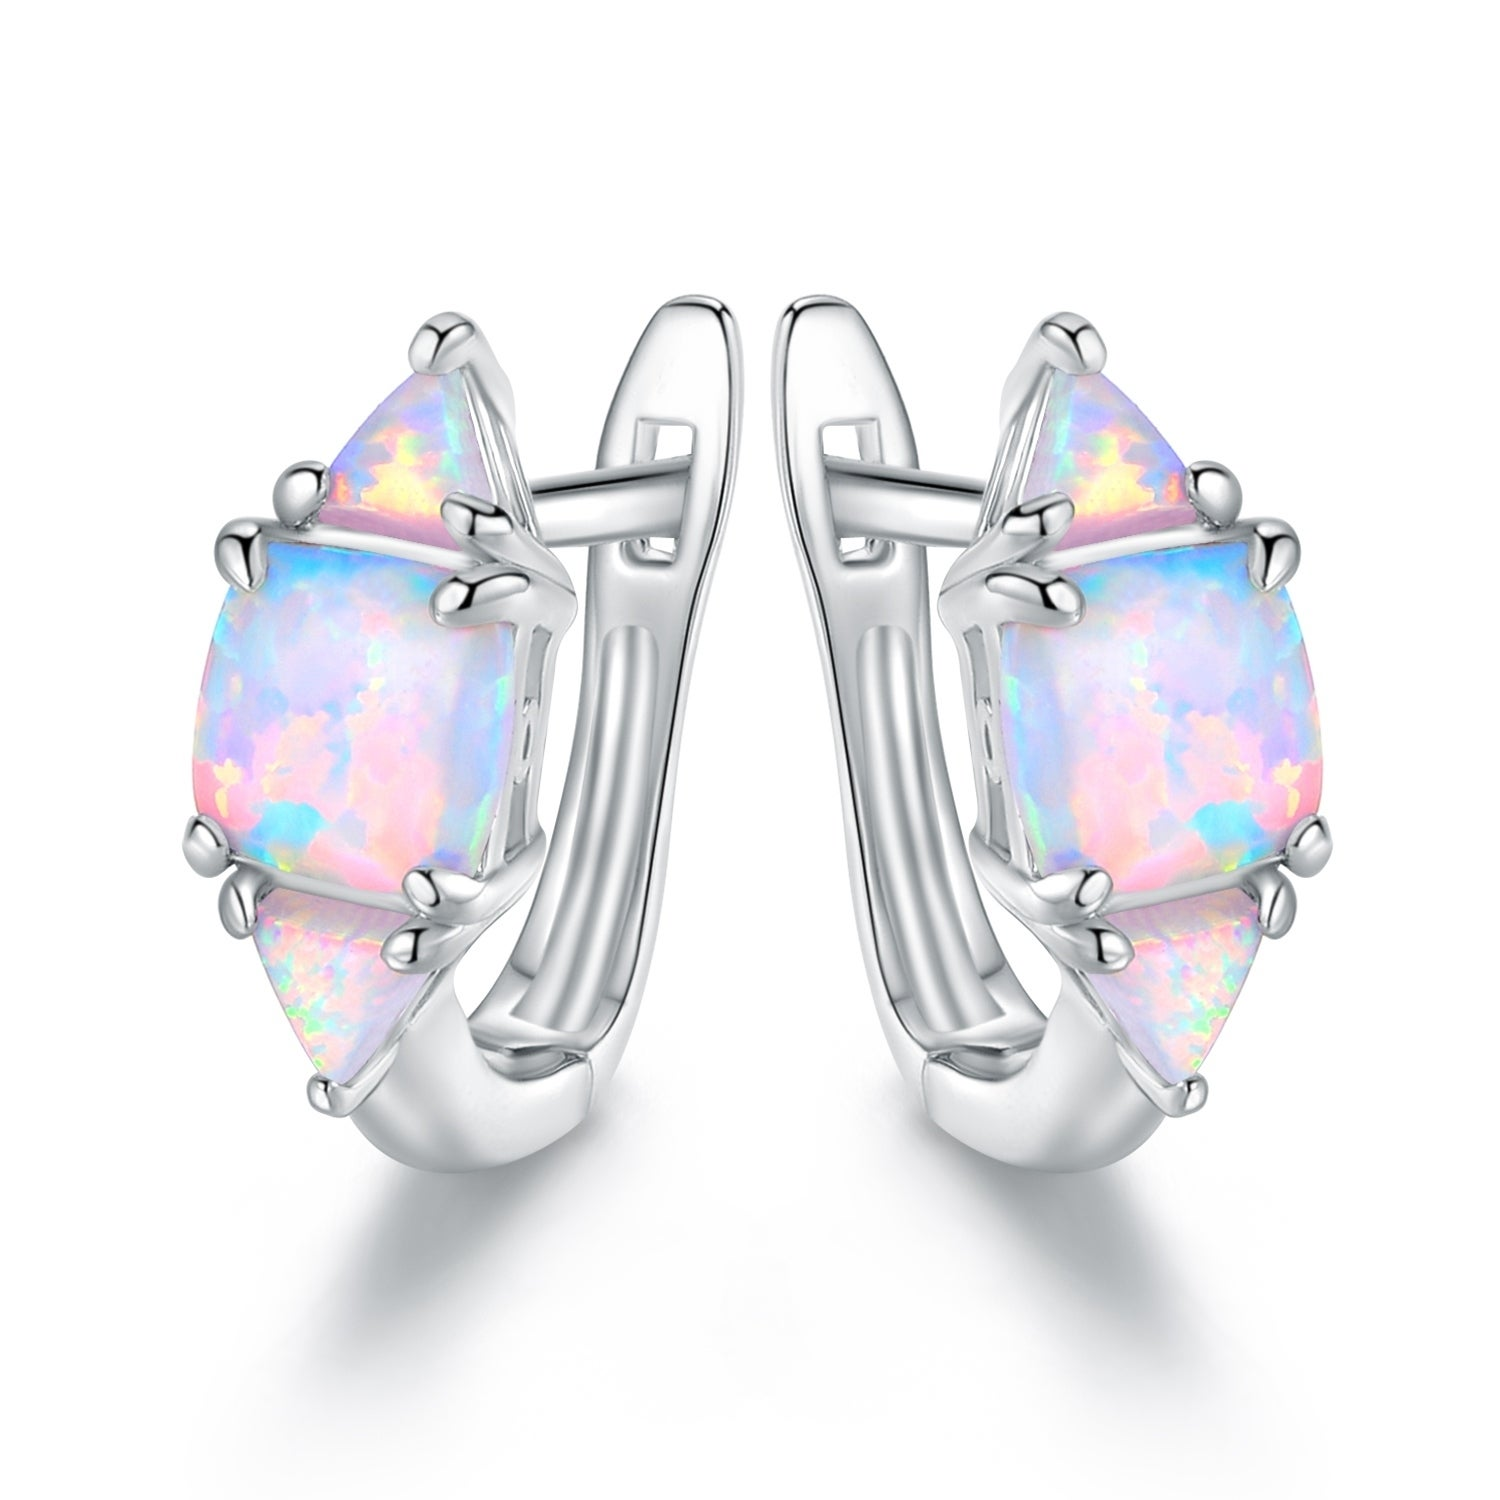 von opal amali earrings bargen ethiopian jewelry new arrivals s op product e teardrop